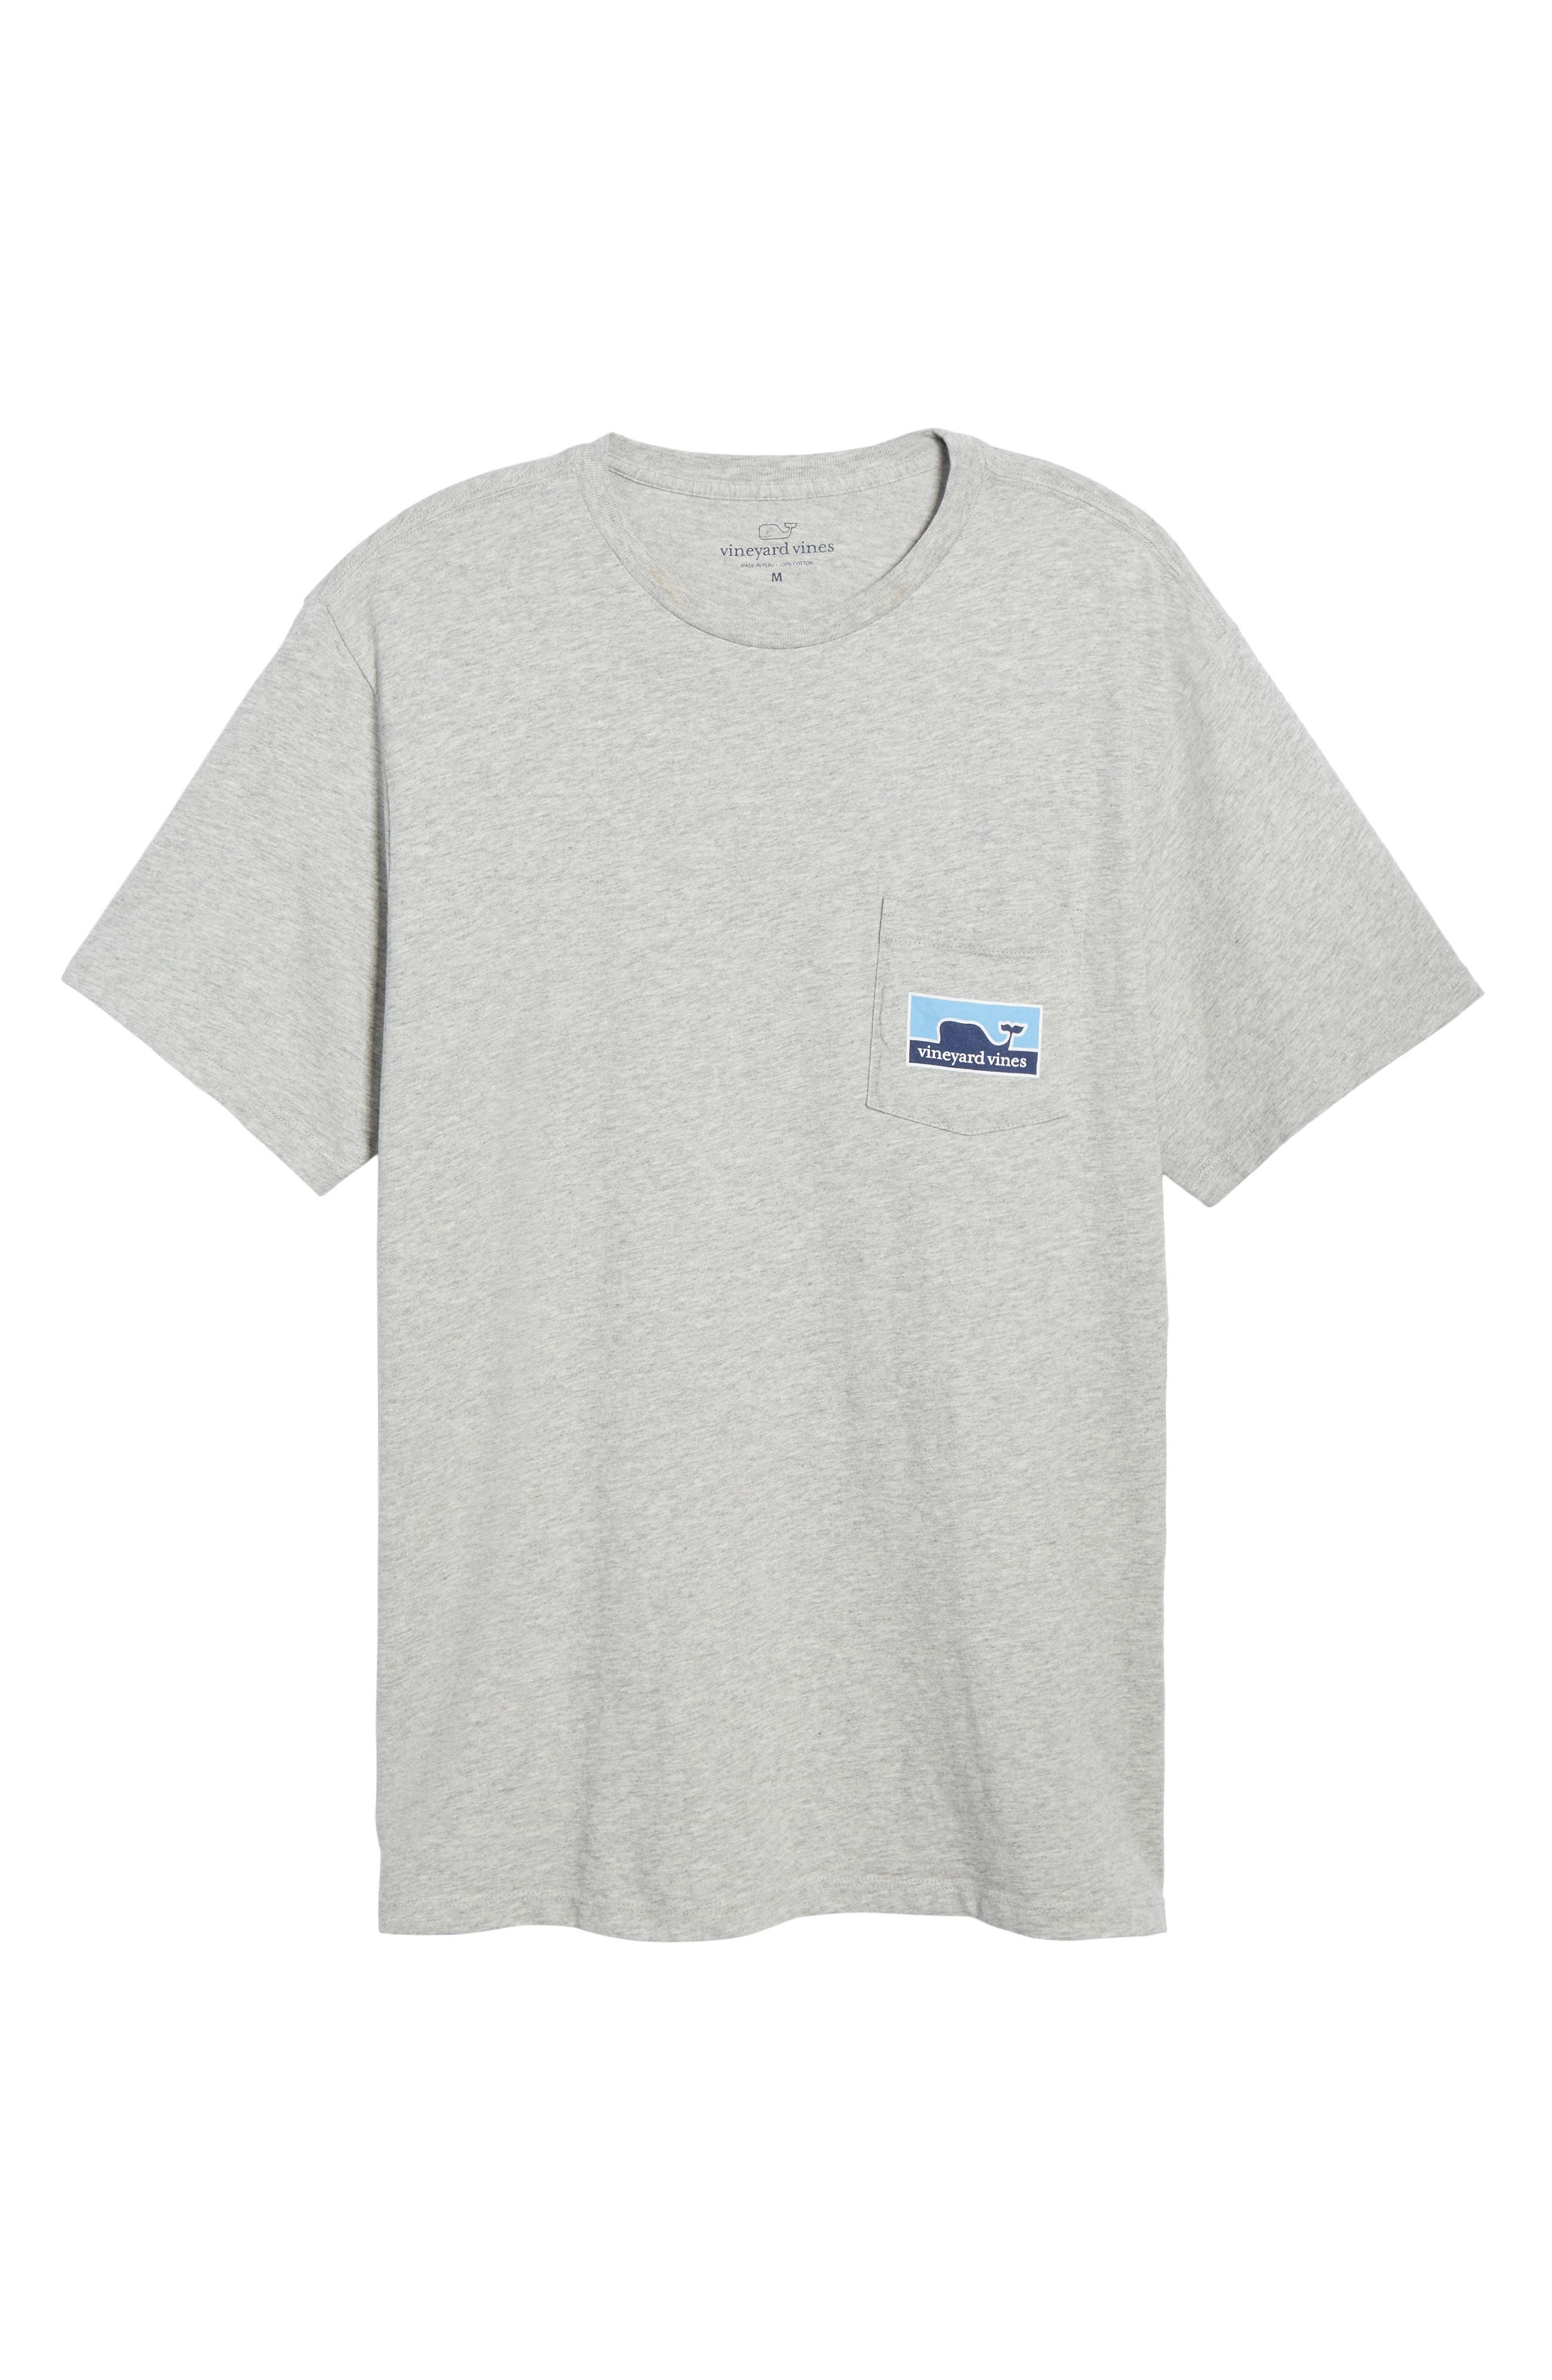 VINEYARD VINES,                             Whaleline Graphic Pocket T-Shirt,                             Alternate thumbnail 6, color,                             039